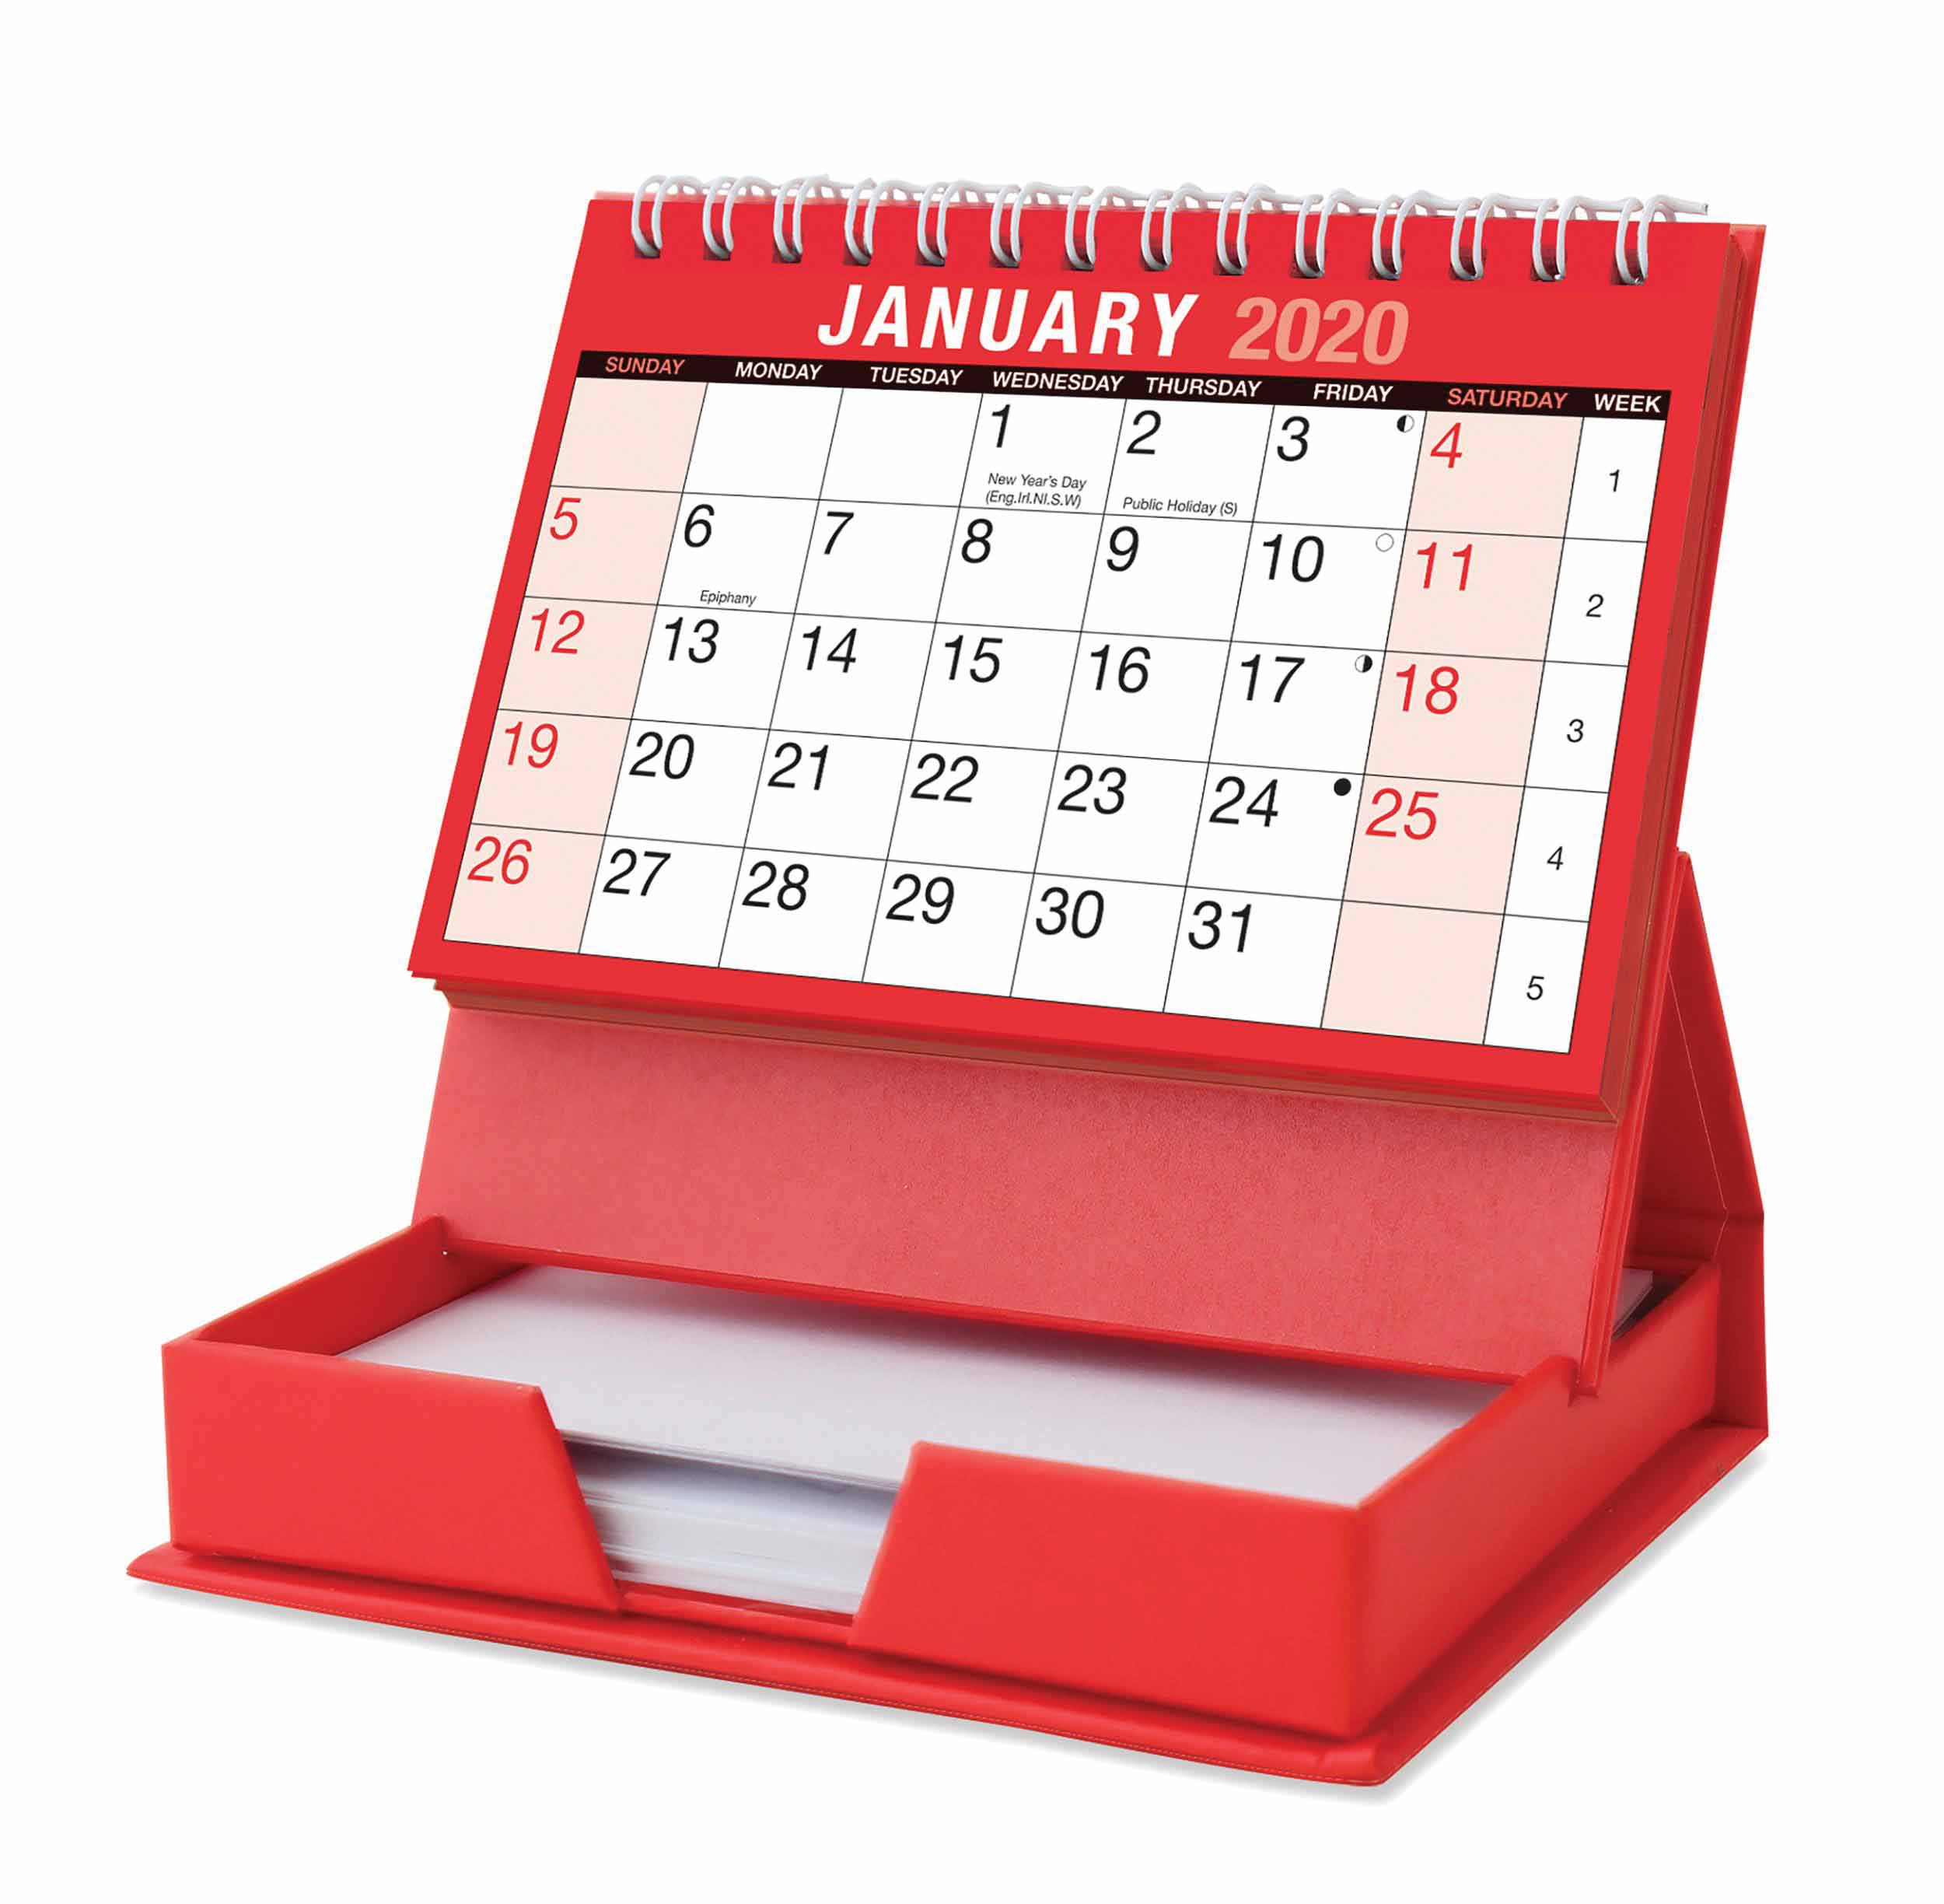 Desktop Calendar With Memo Pad 2020 - Calendar Club Uk